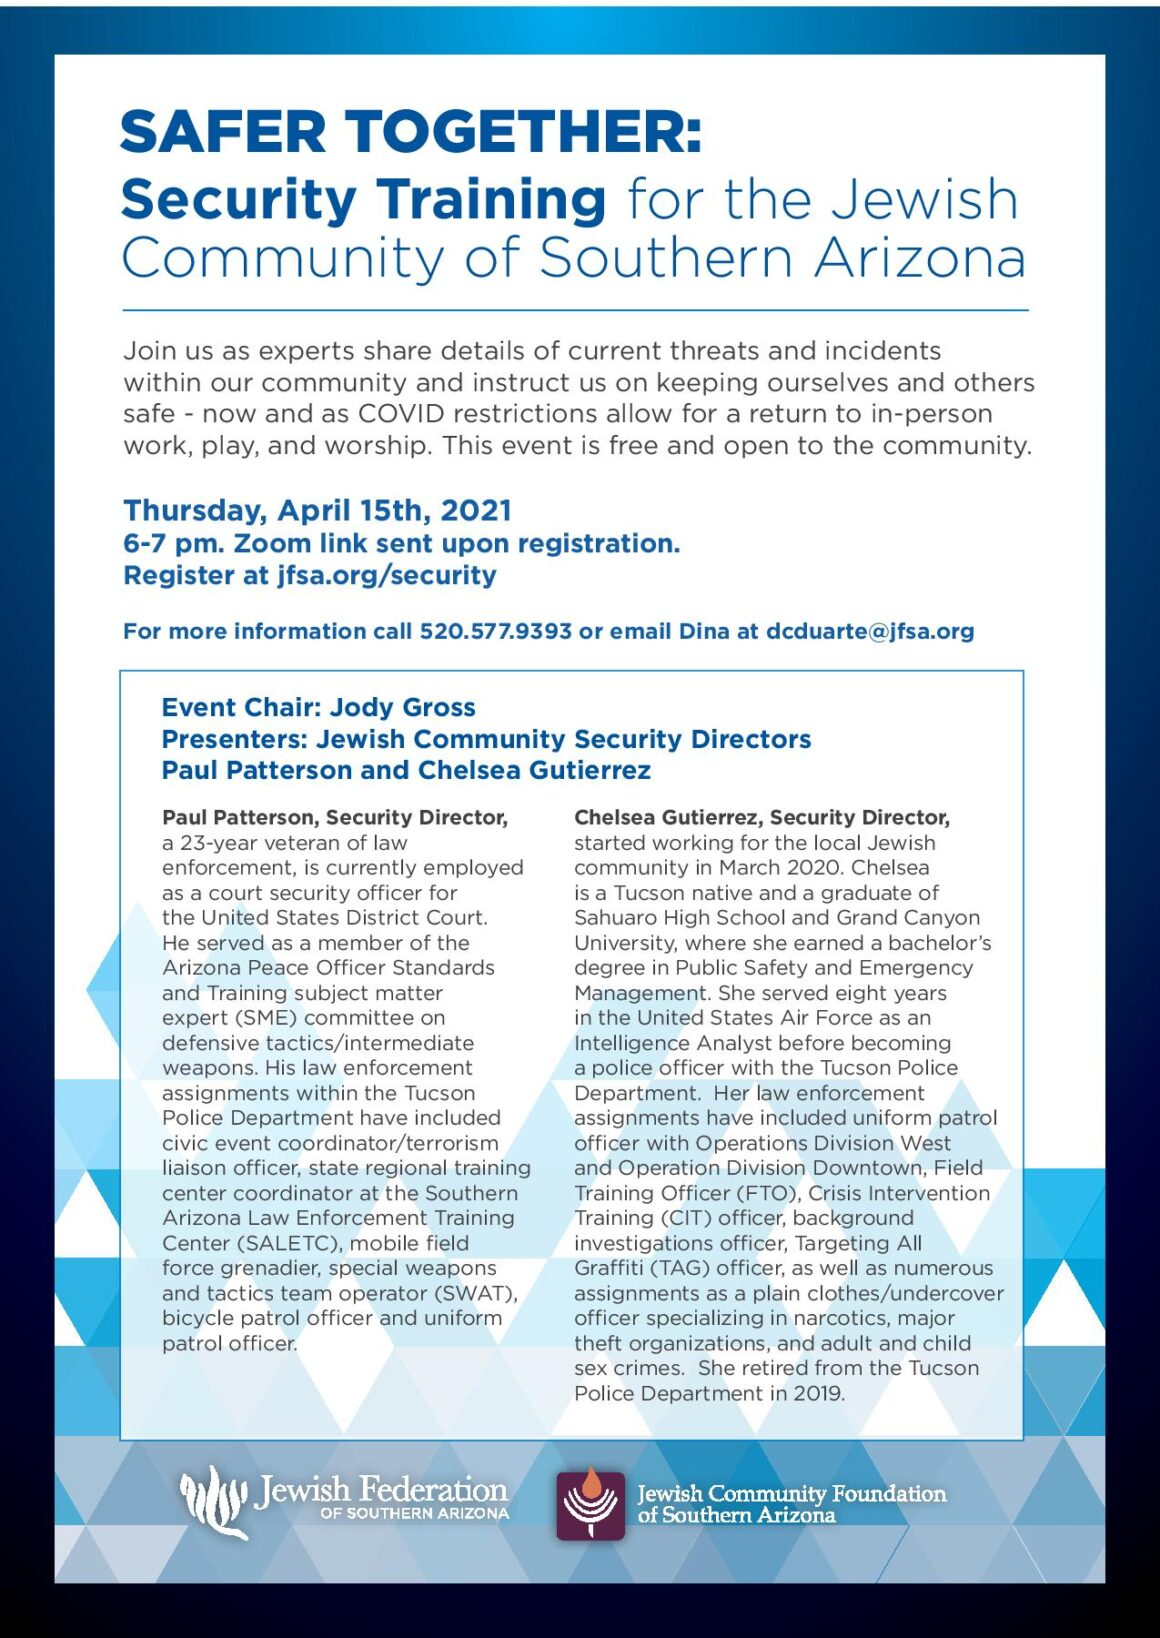 Safer Together: Security Training for the Jewish Community of Southern AZ @ Zoom